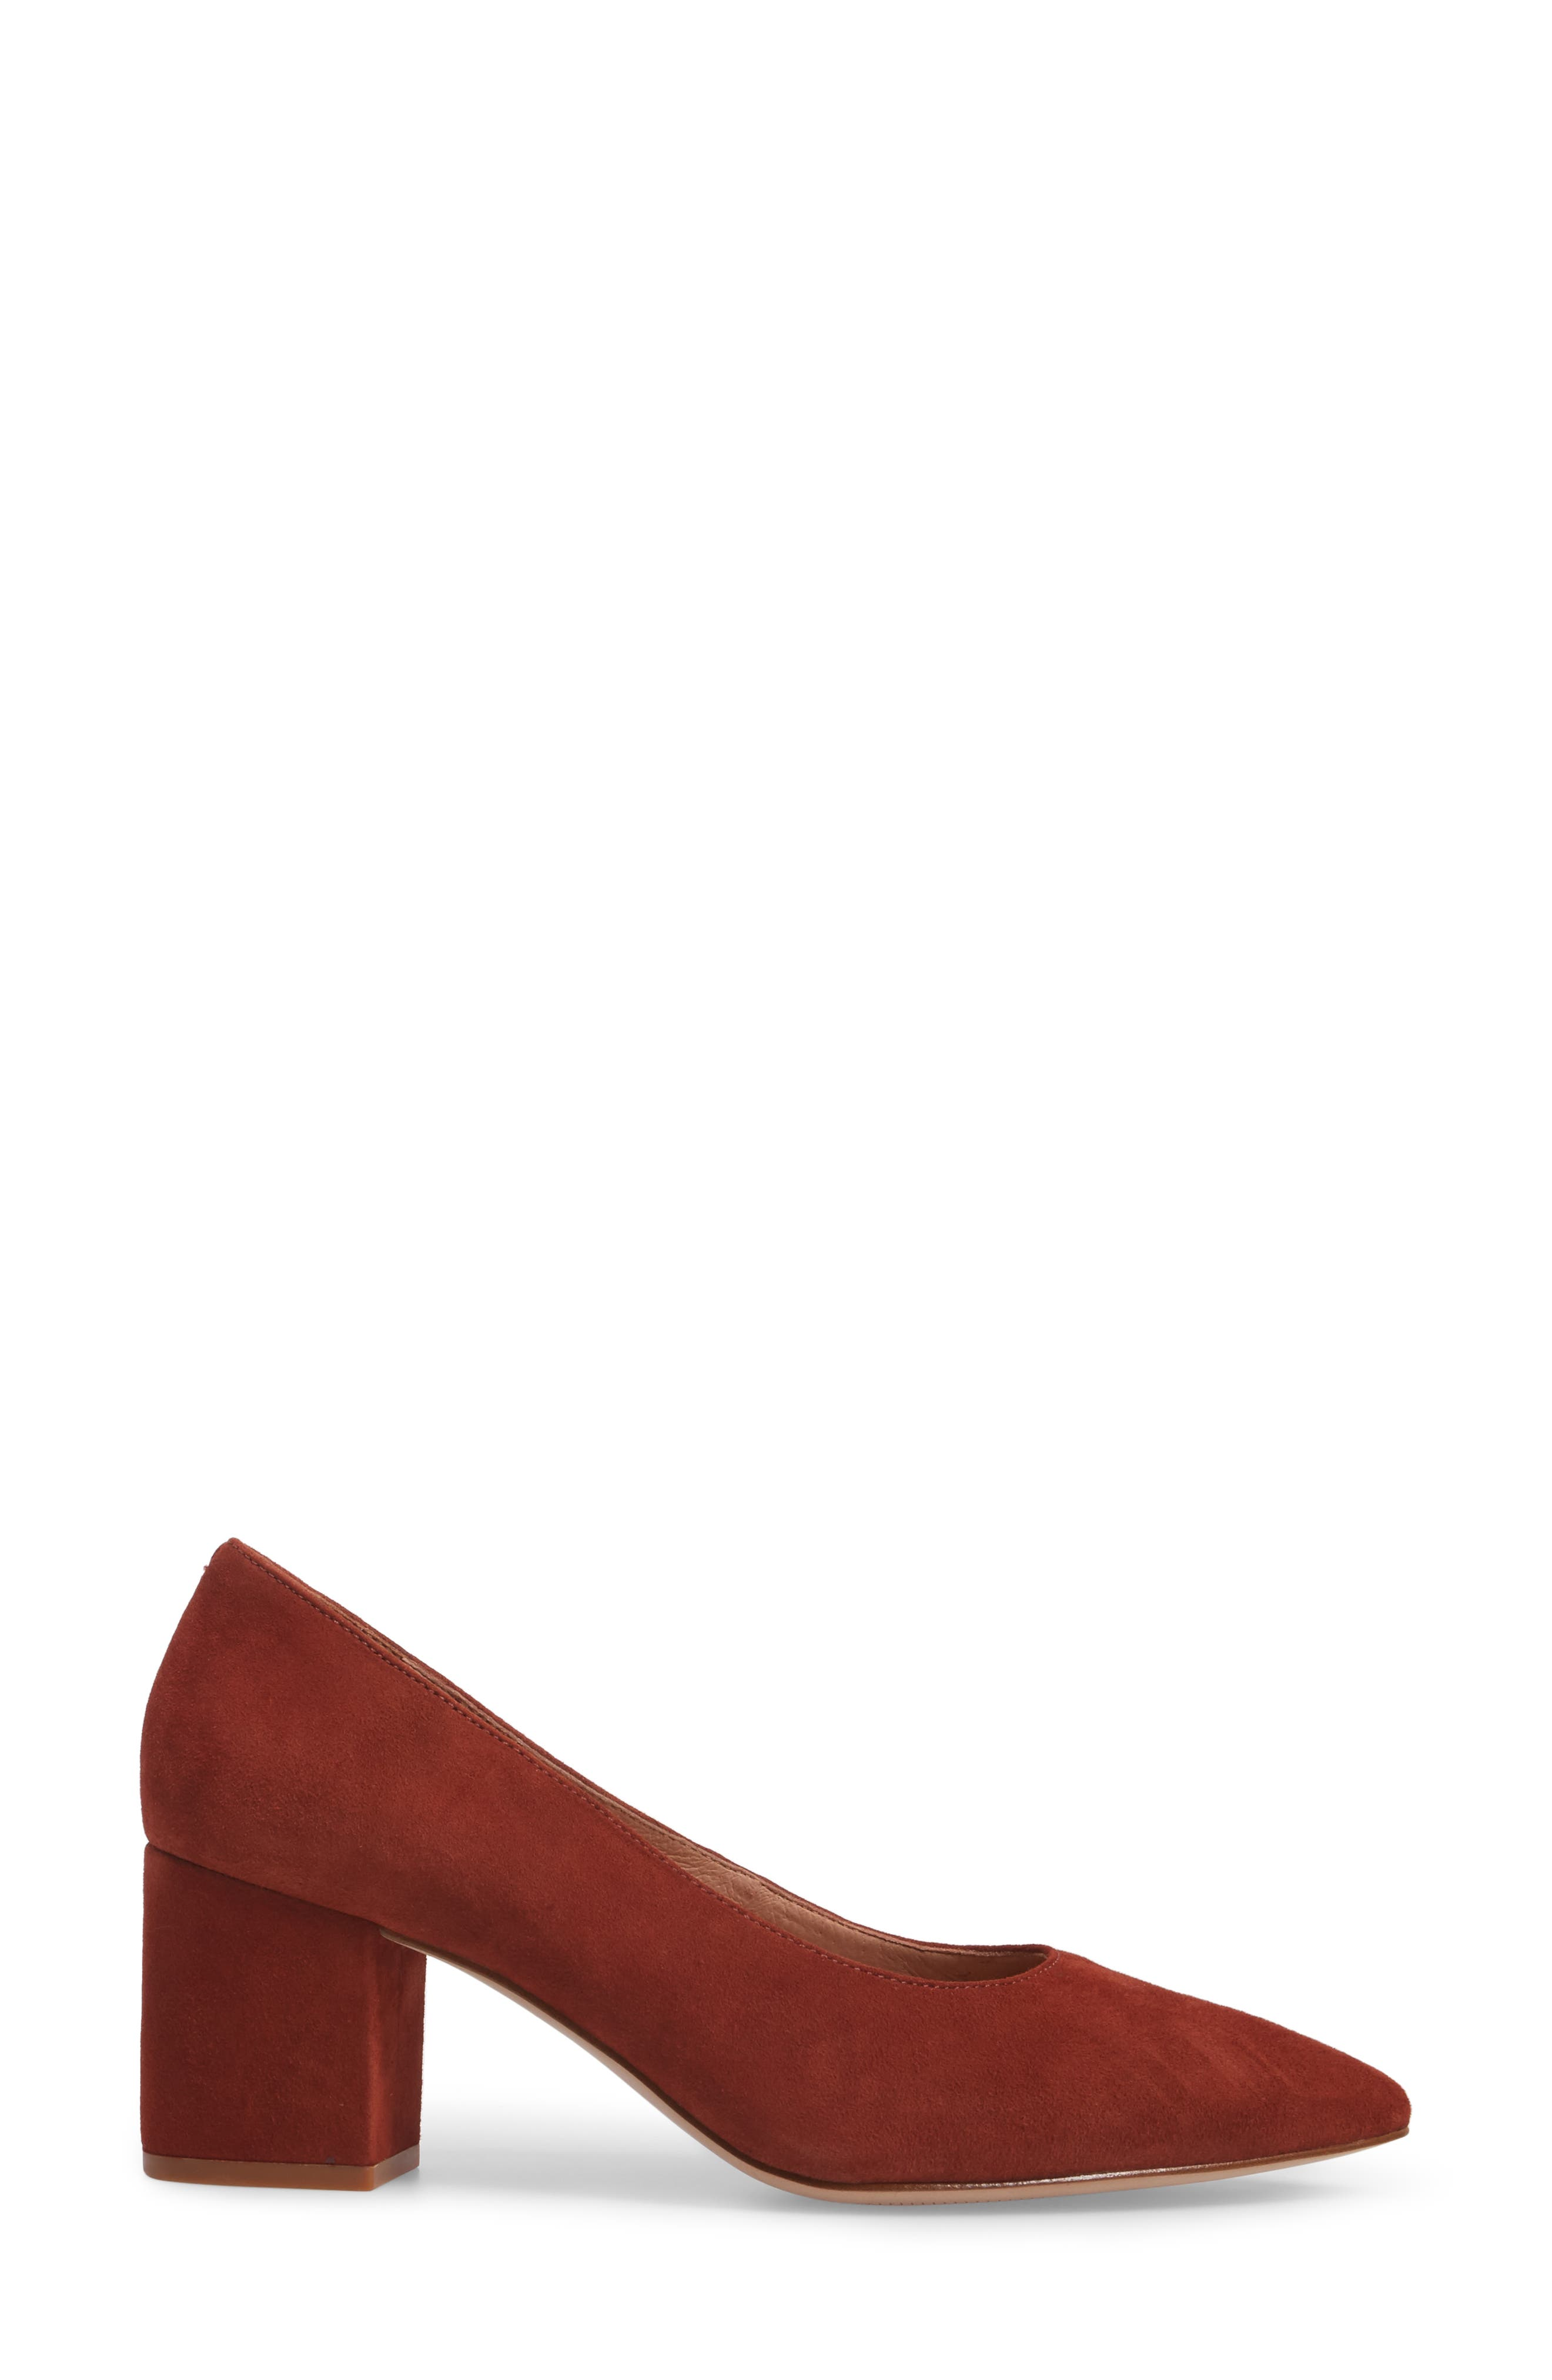 Rivka Pointy Toe Pump,                             Alternate thumbnail 3, color,                             Vintage Redwood Suede